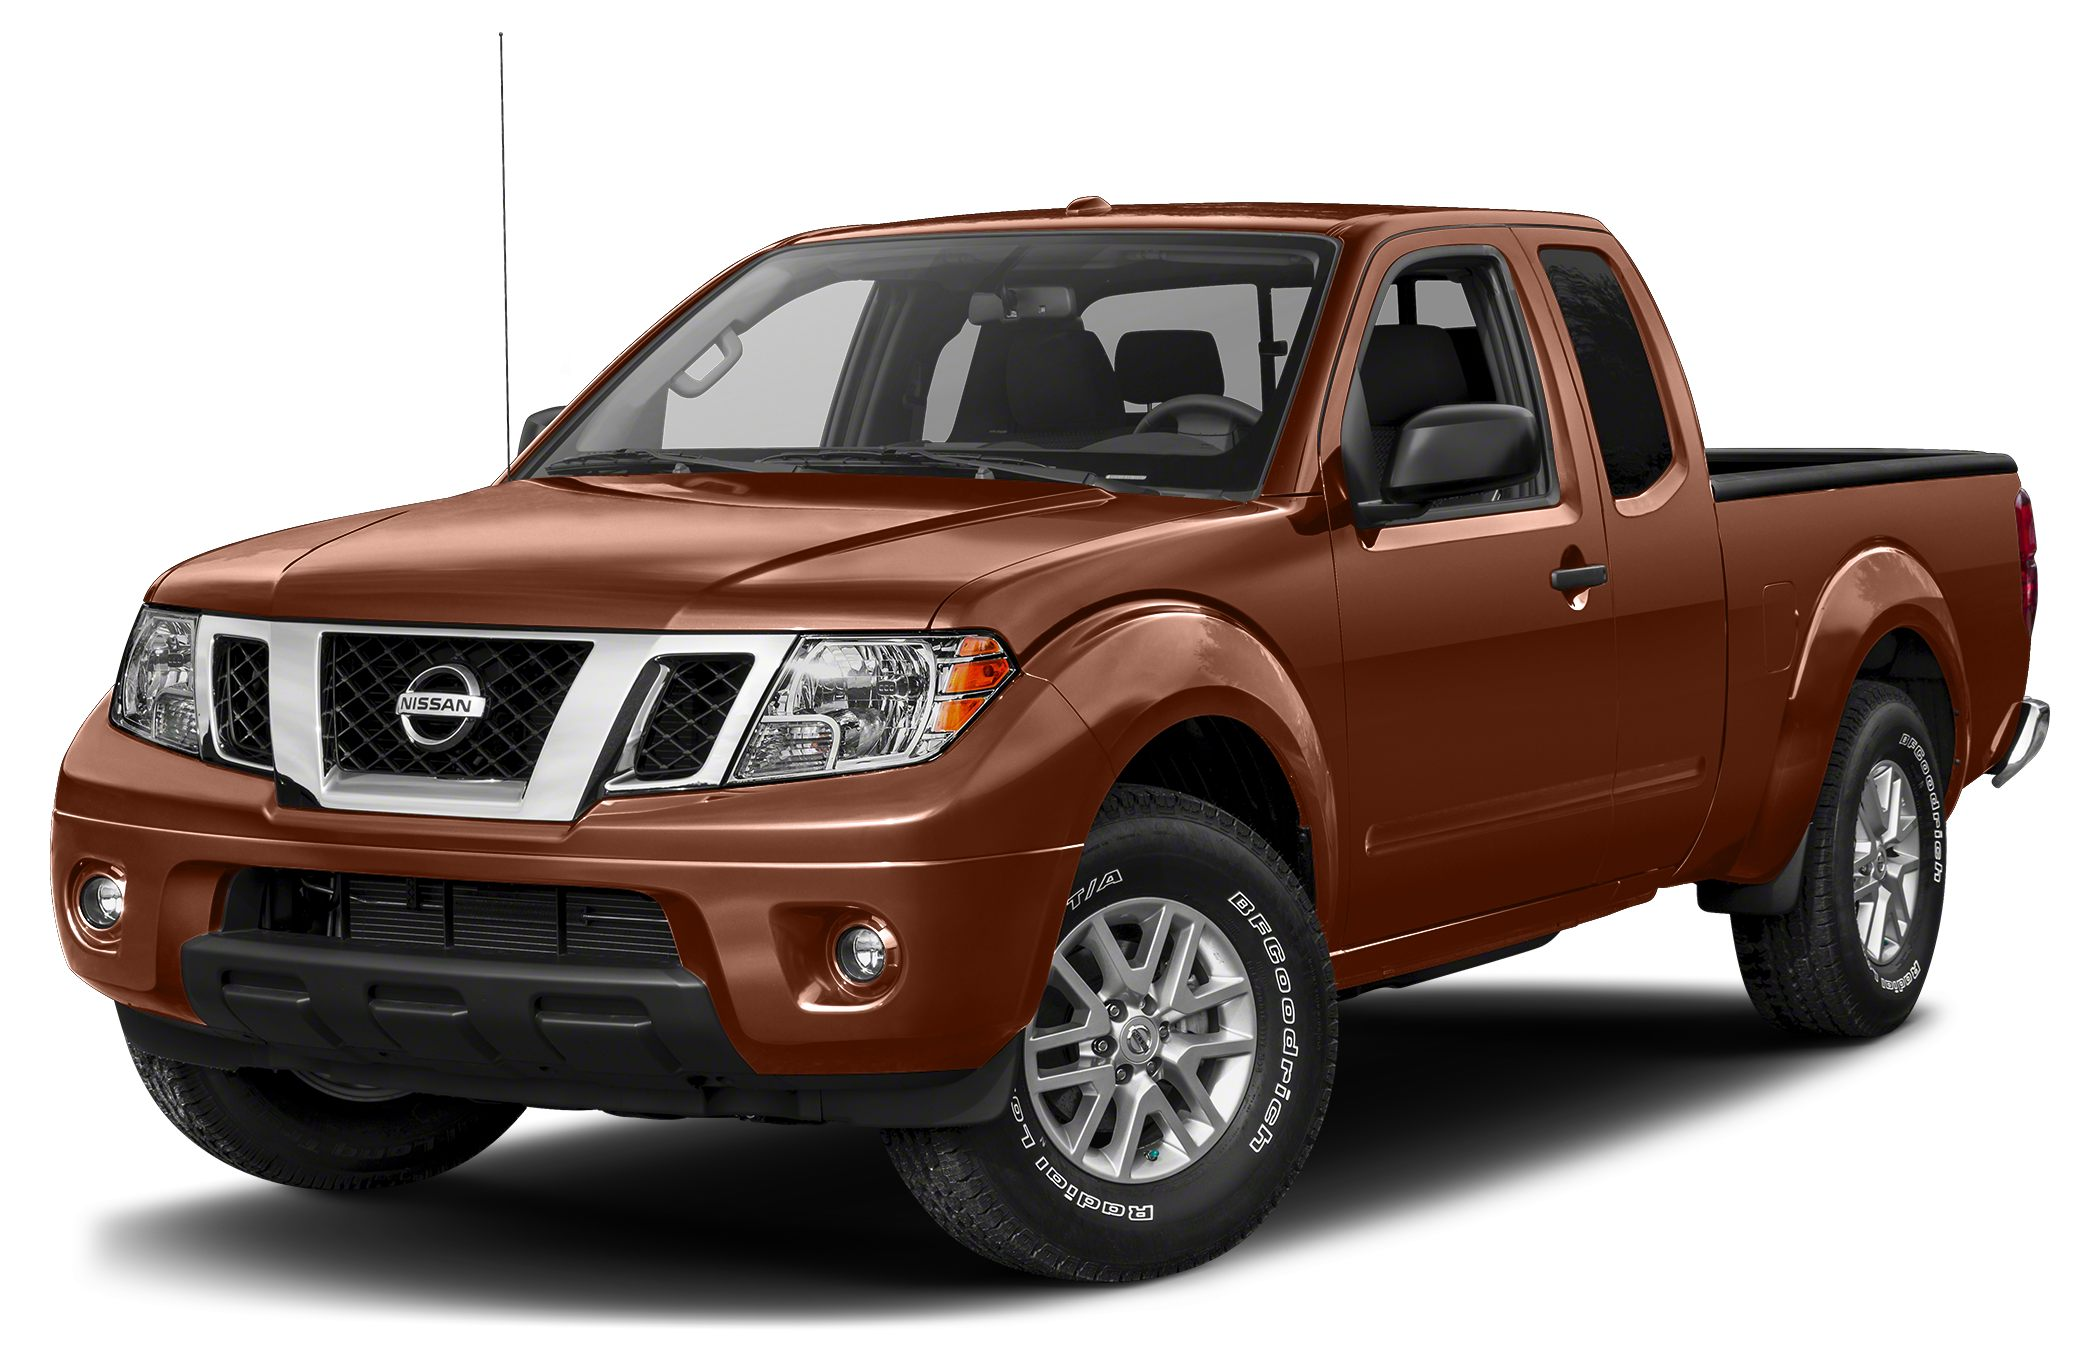 2015 Nissan Frontier PRO-4X The Nissan Frontier might be a midsize truck but it does not skimp on